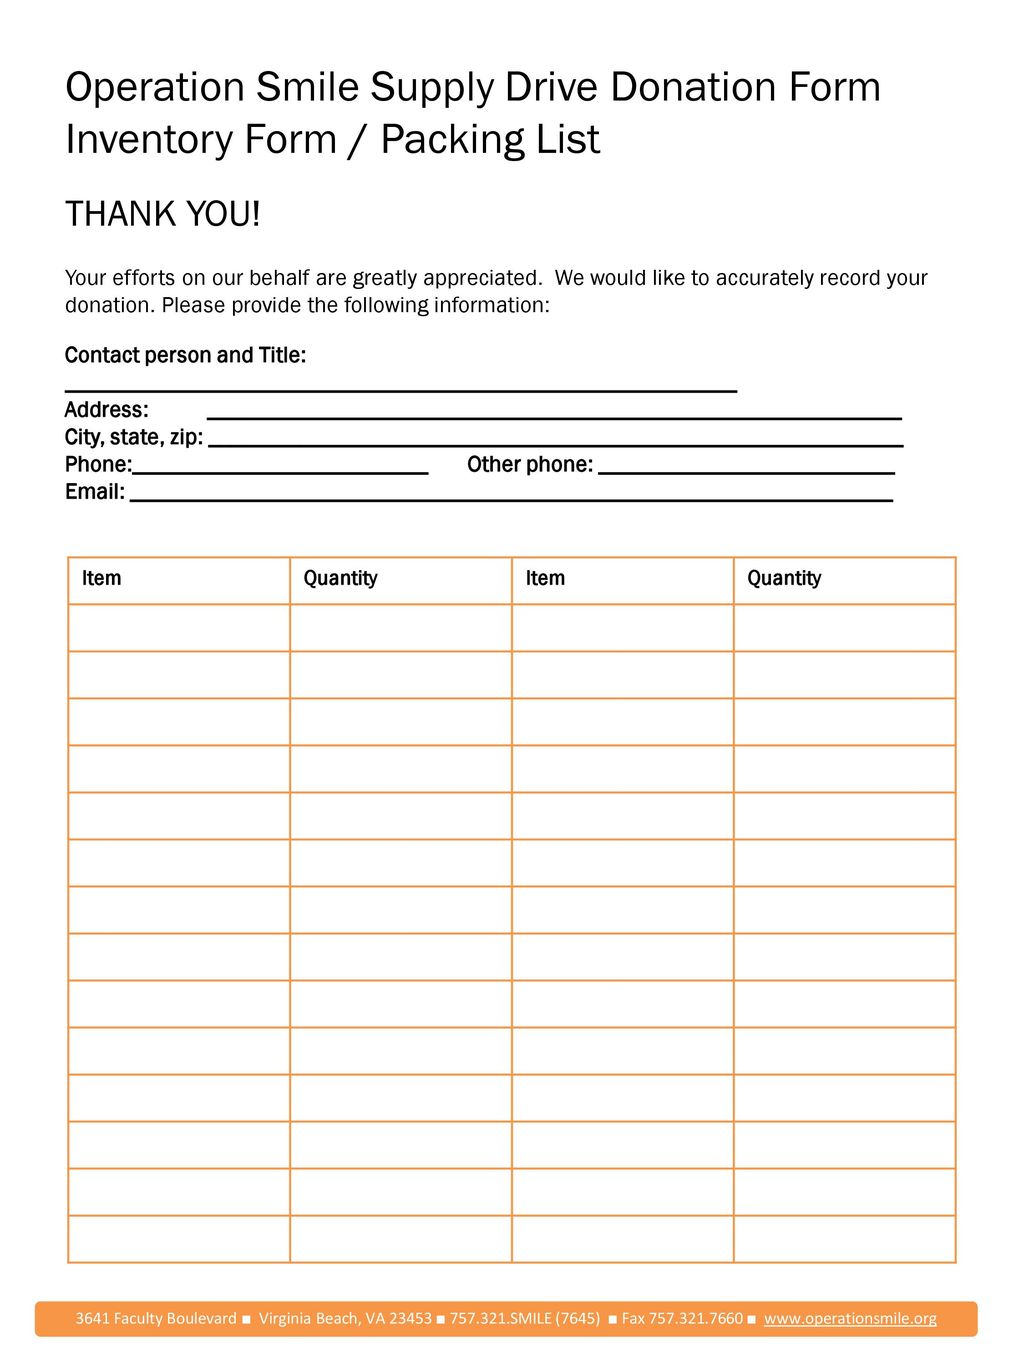 operation smile supply drive donation form inventory form packing list